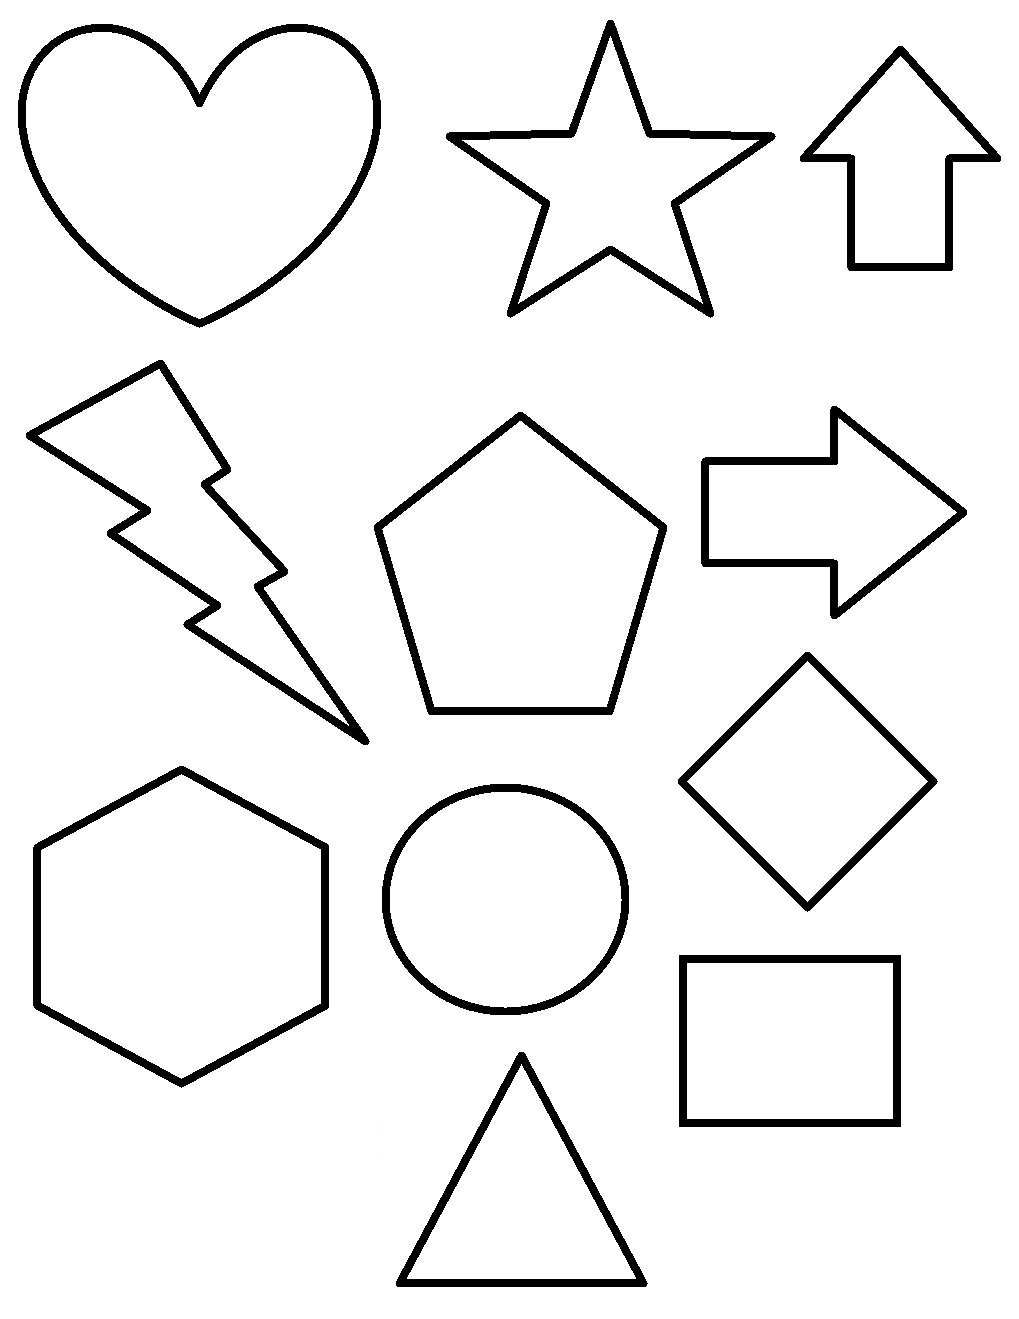 Free Printable Shapes Coloring Pages For Kids | 1319x1019